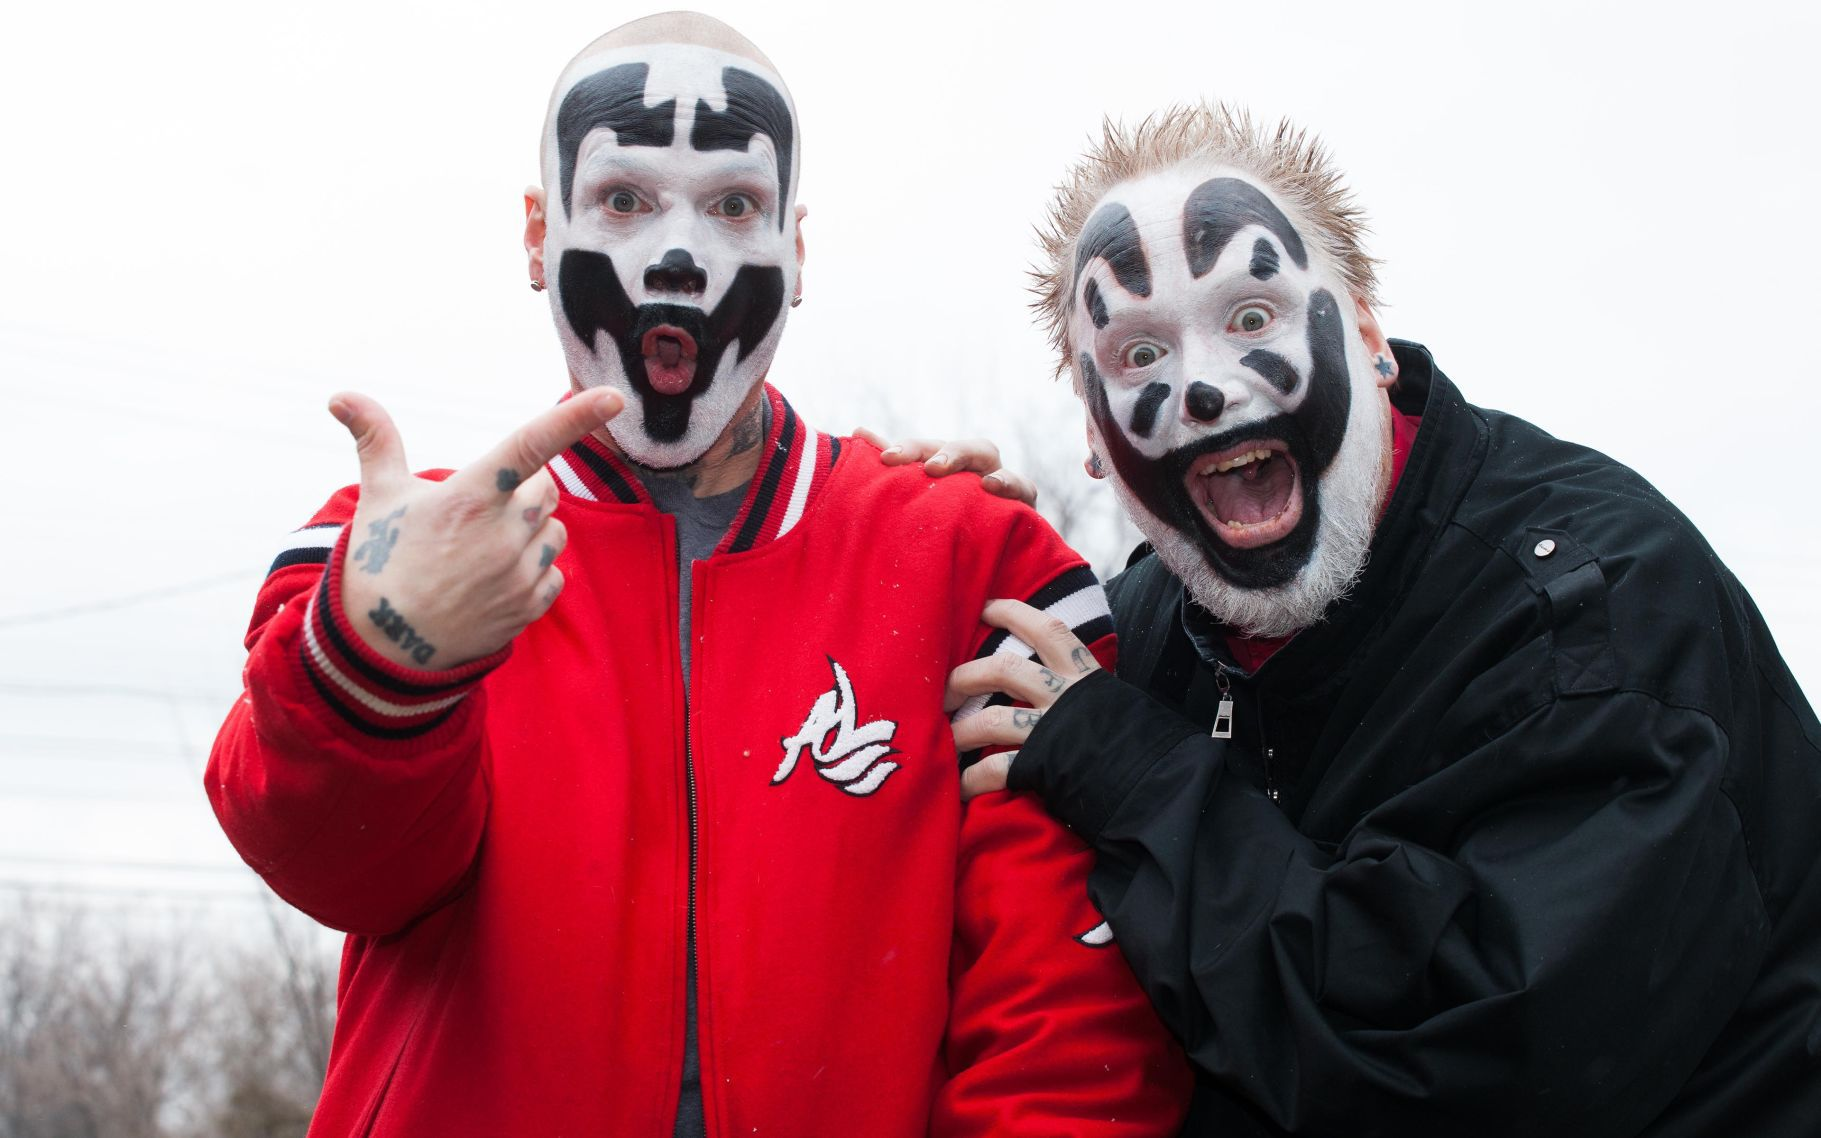 Insane clown posse dating game song